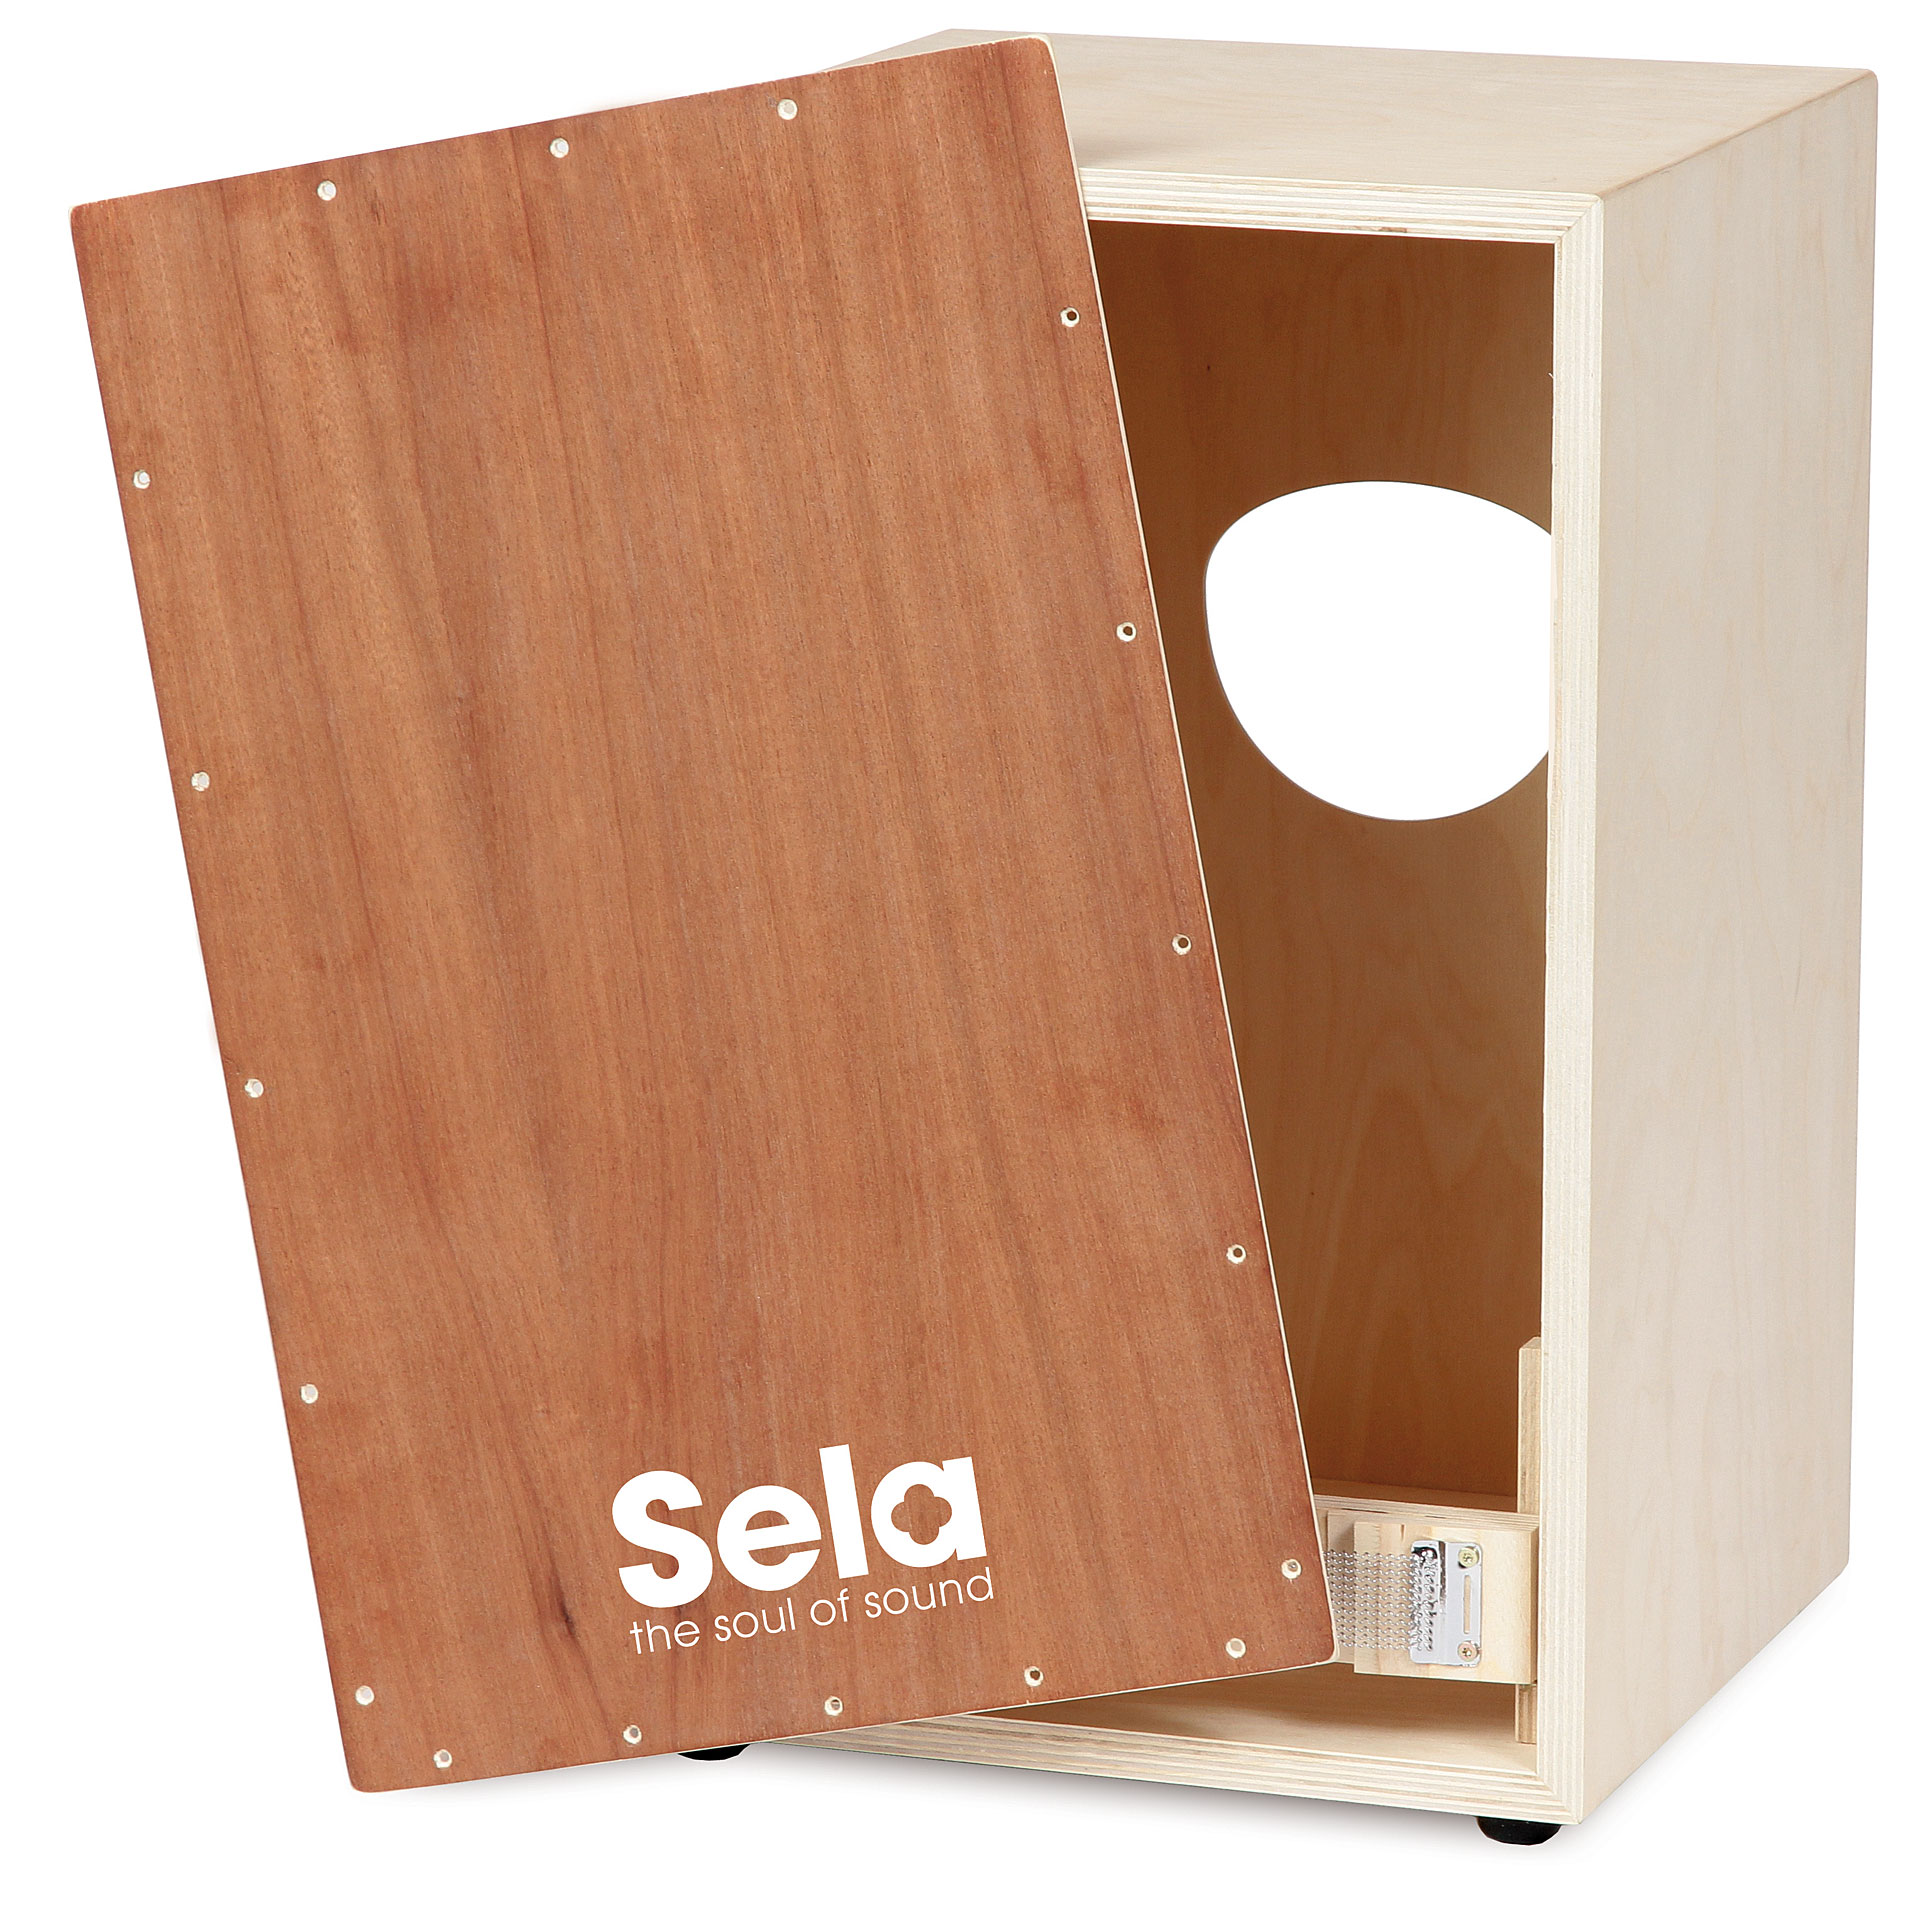 sela se001 bausatz cajon. Black Bedroom Furniture Sets. Home Design Ideas